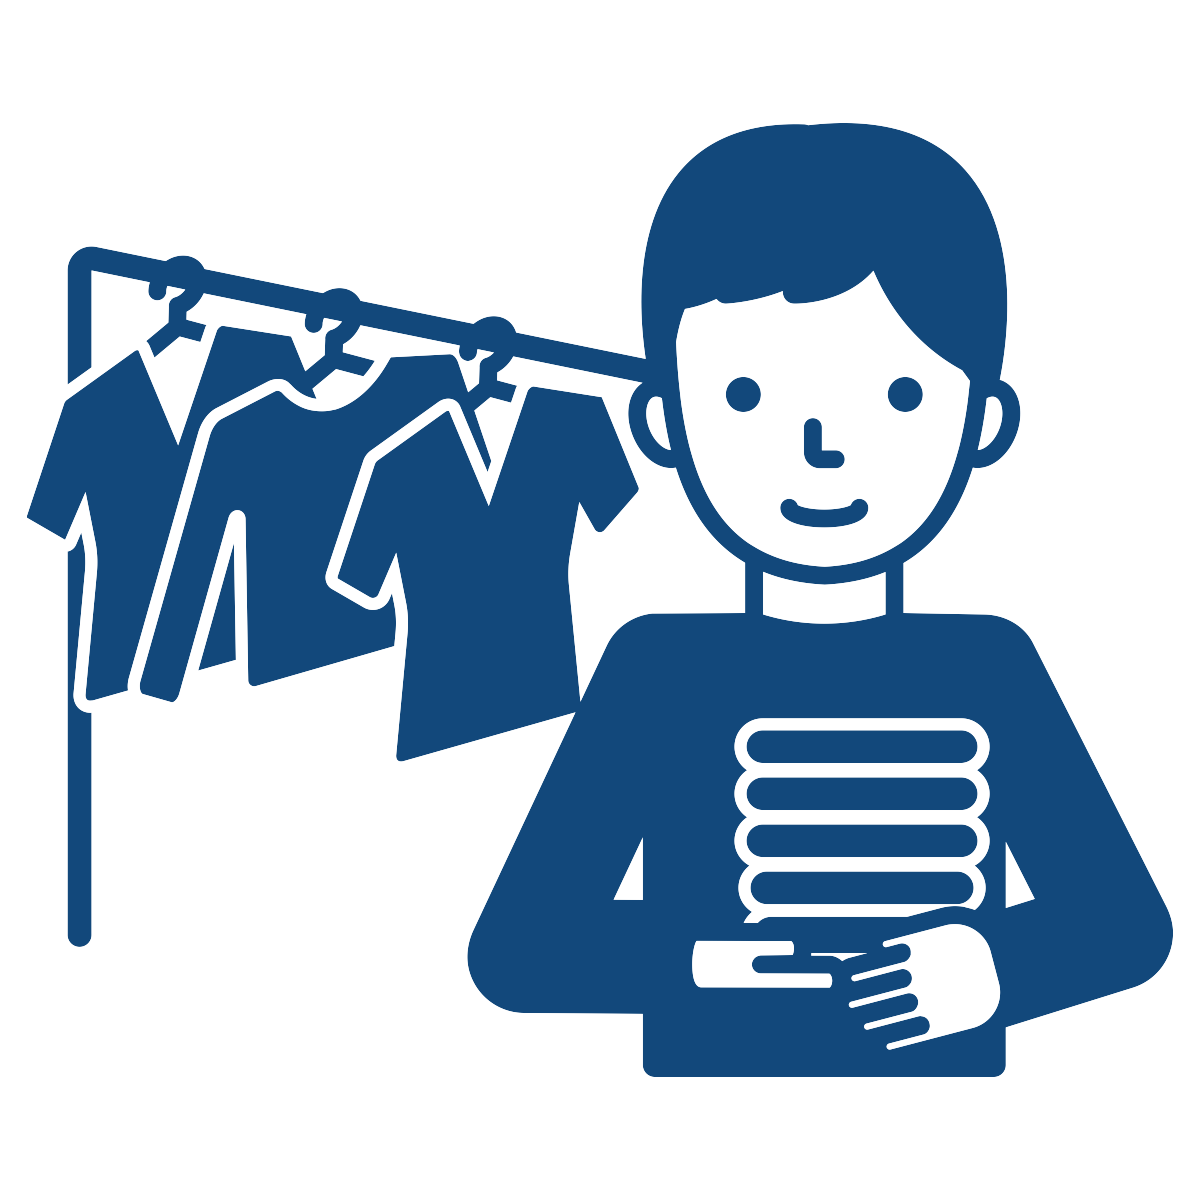 simple drawing of a man standing in front of a clothing rack with shirts hanging on it.